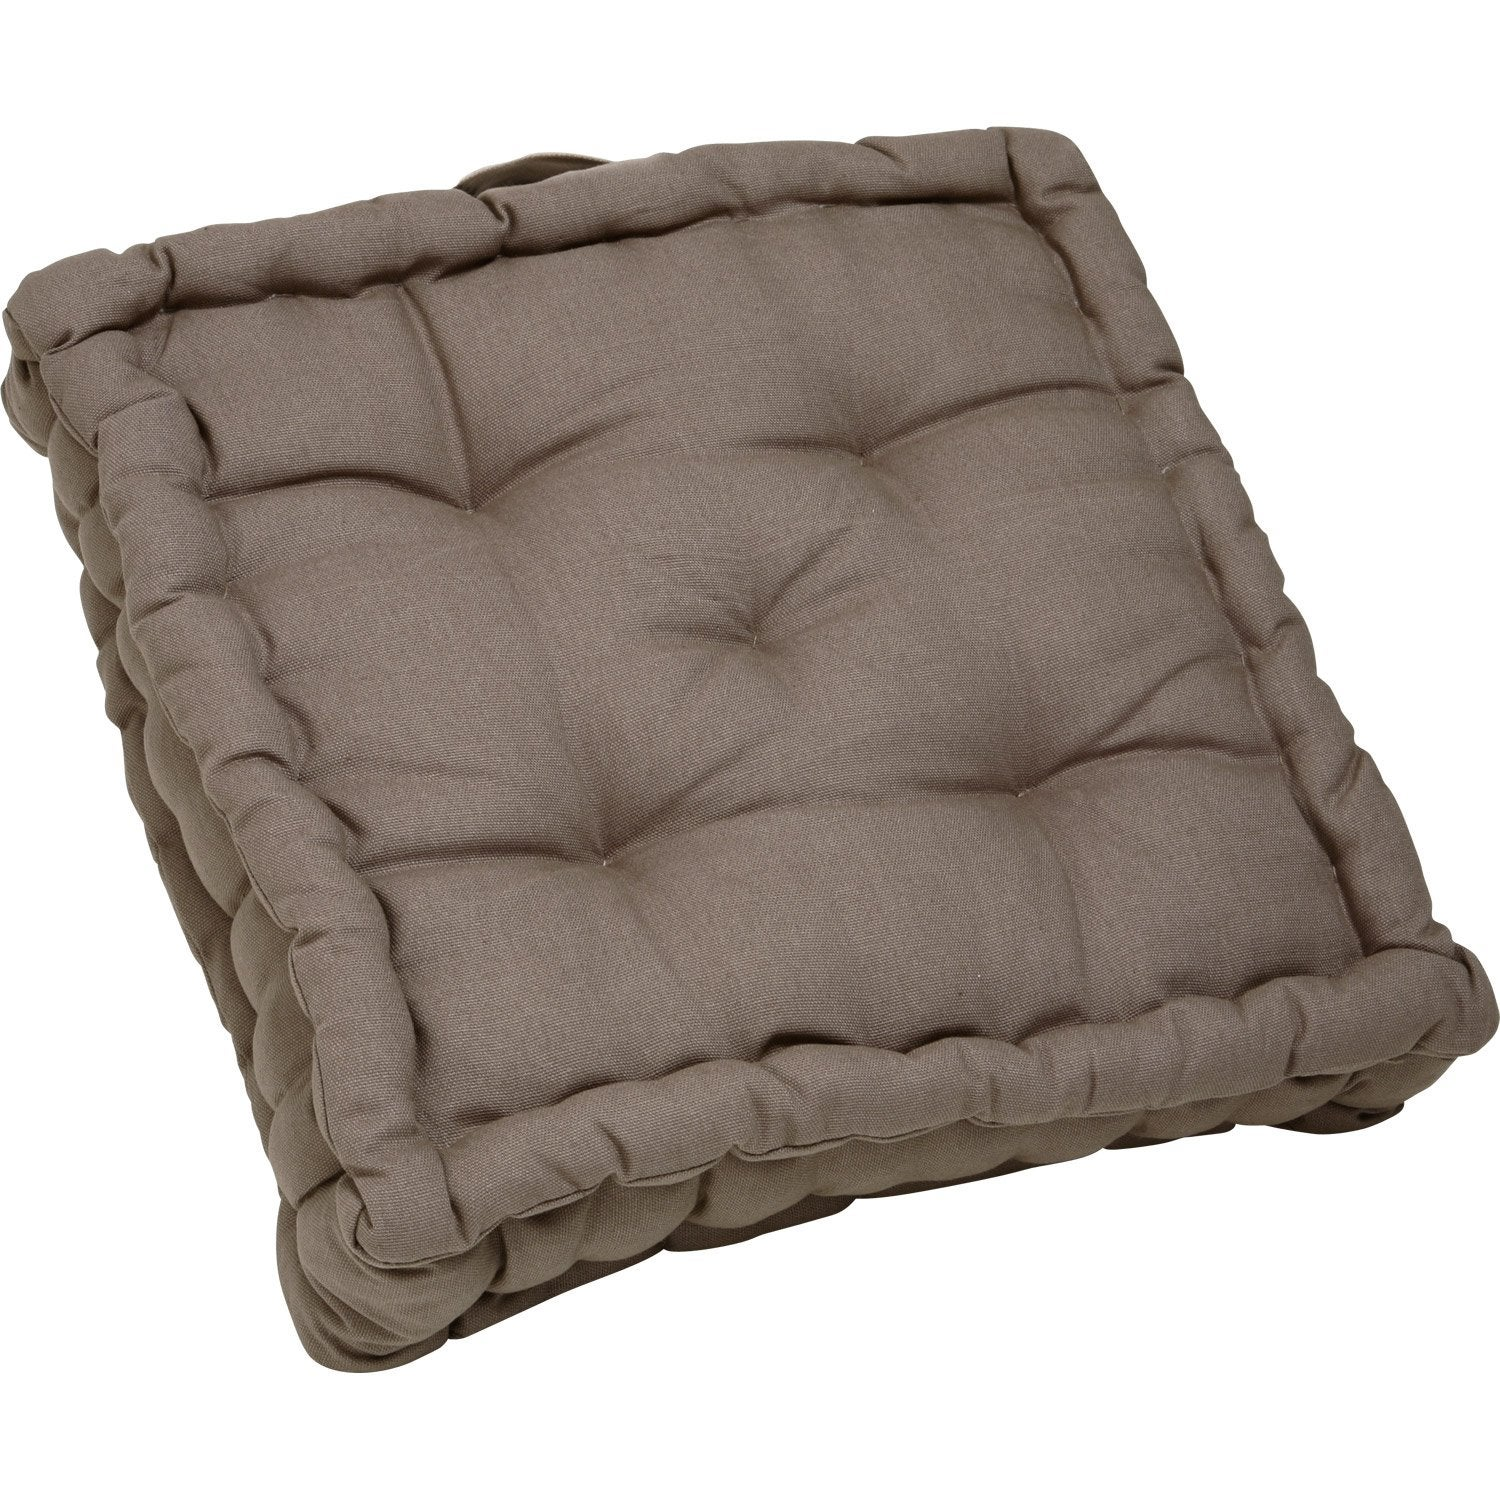 coussin de sol cl a inspire brun taupe n 3 x x. Black Bedroom Furniture Sets. Home Design Ideas